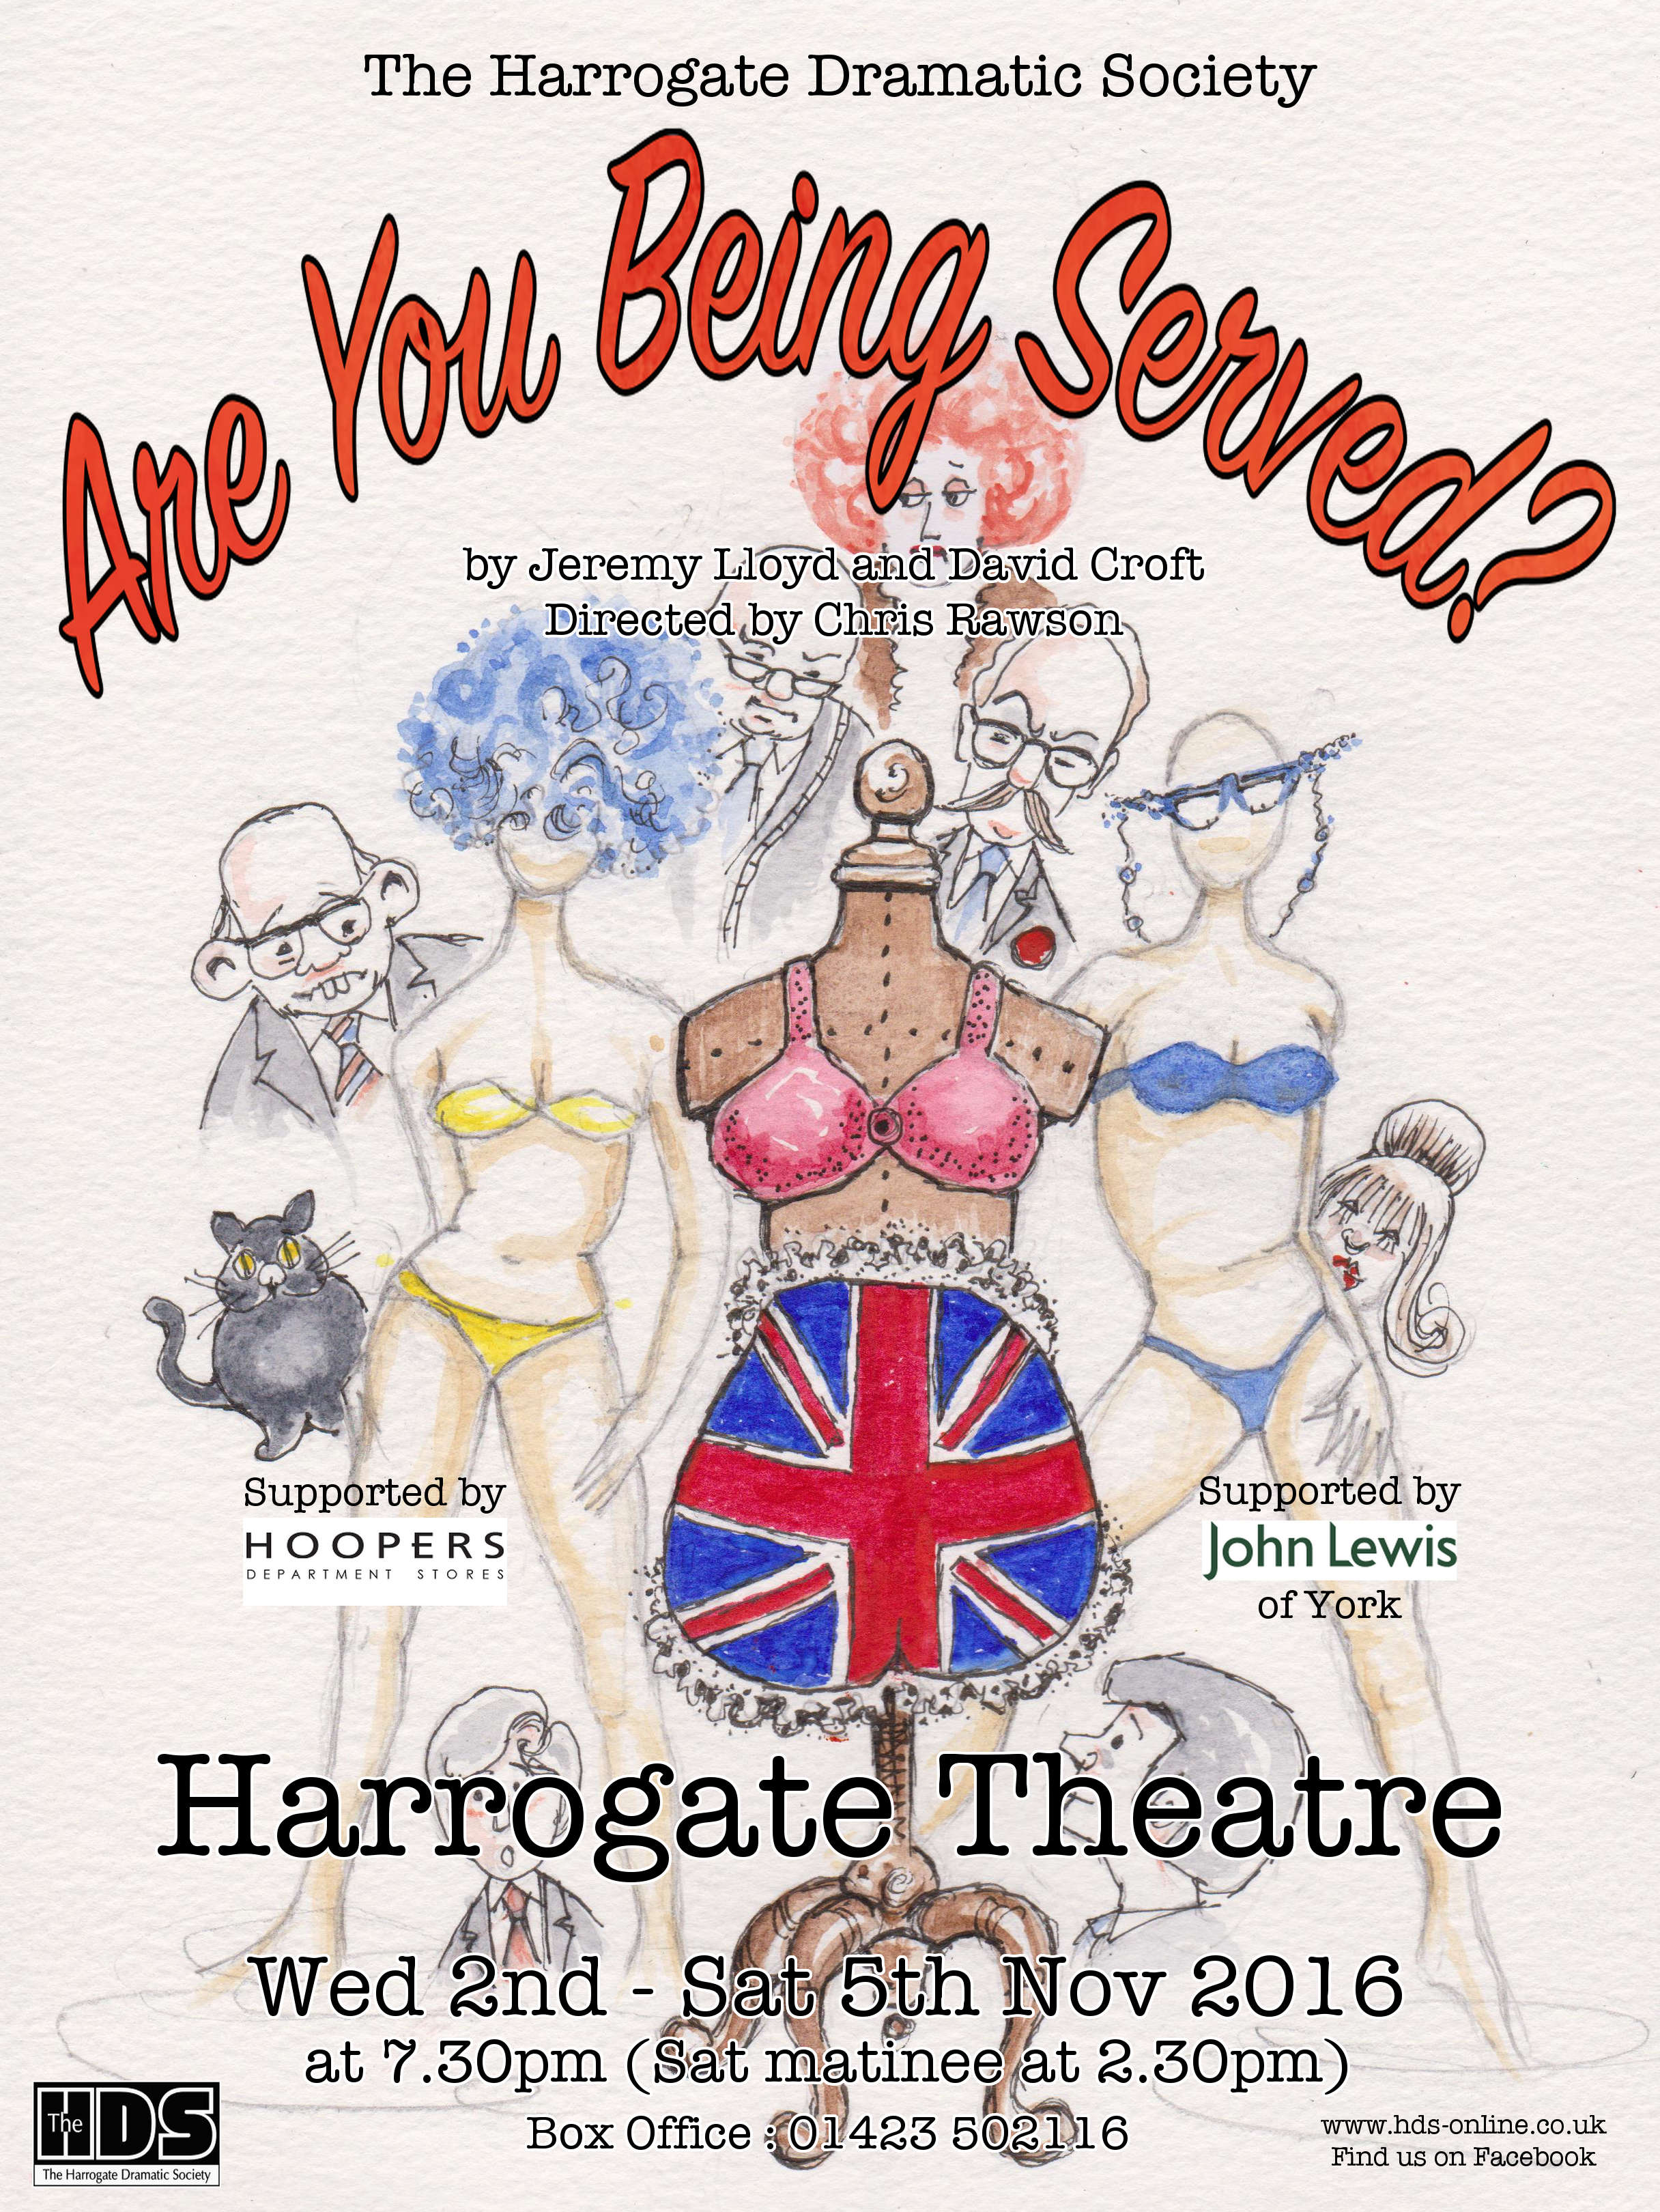 Are You Being Served? 2016